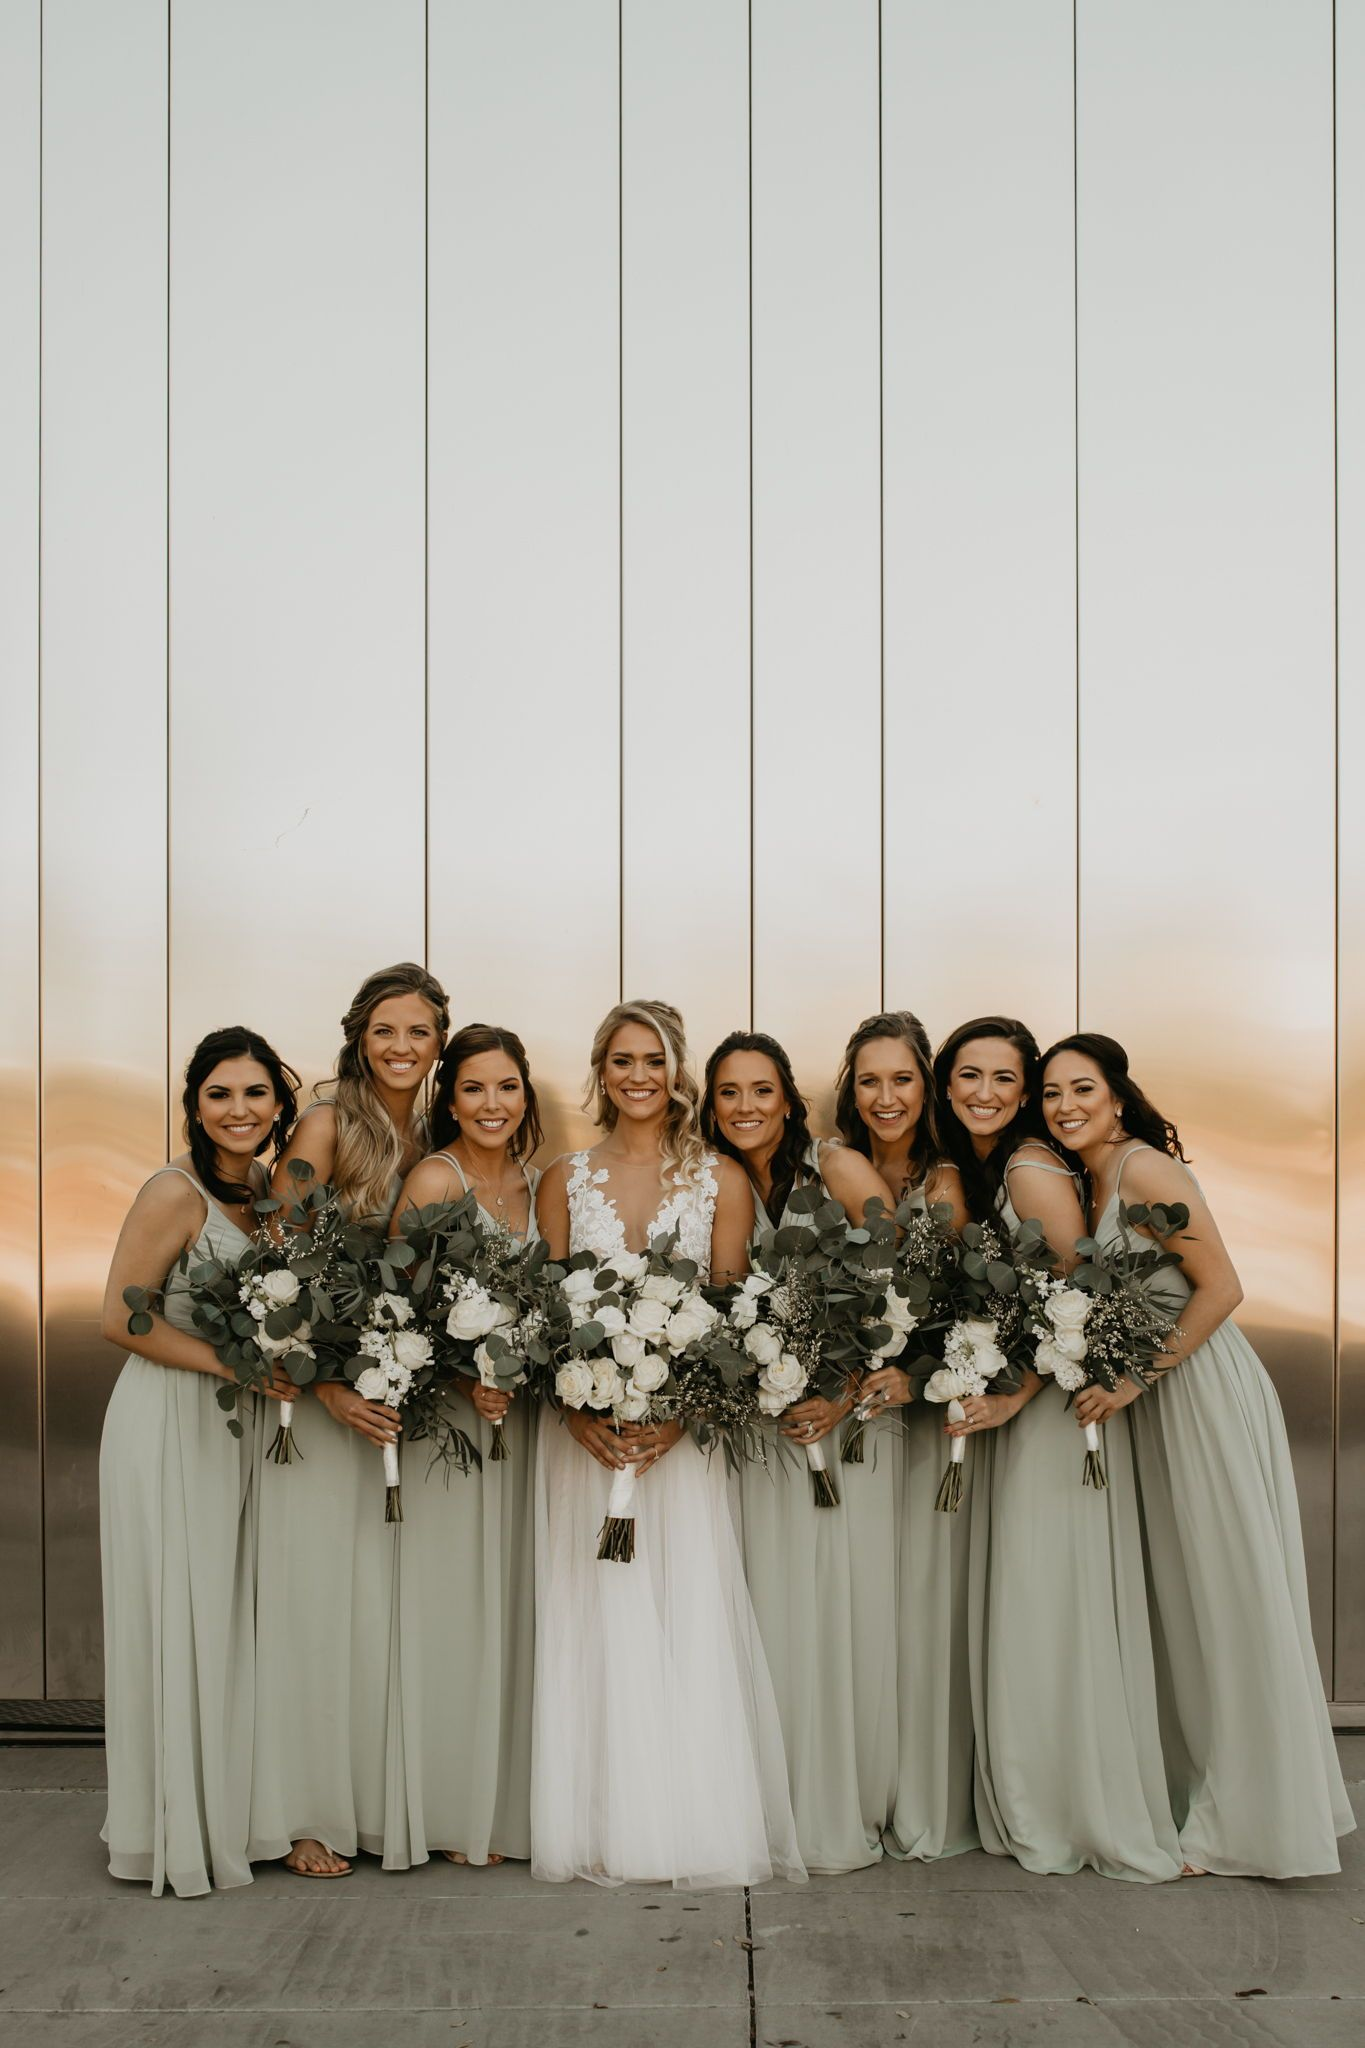 brookklyn photo | sunset arizona wedding soho 63 in 2020